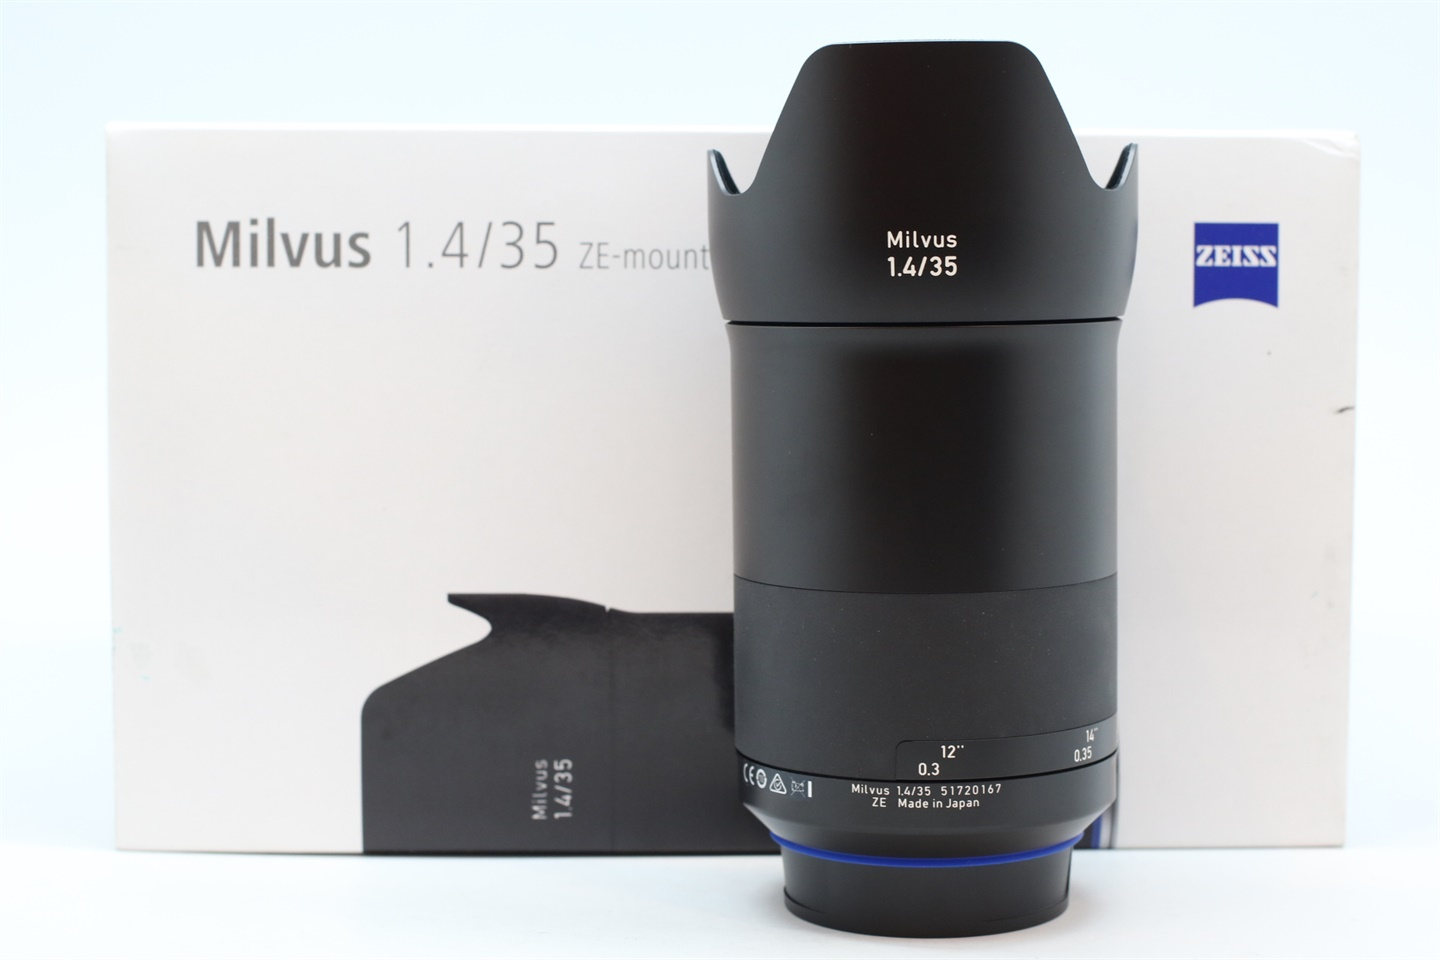 [USED-PUDU] ZEISS 35MM F1.4 Milvus ZE (CANON Mount) LENS 95%LIKE NEW CONDITION  SN;51720167